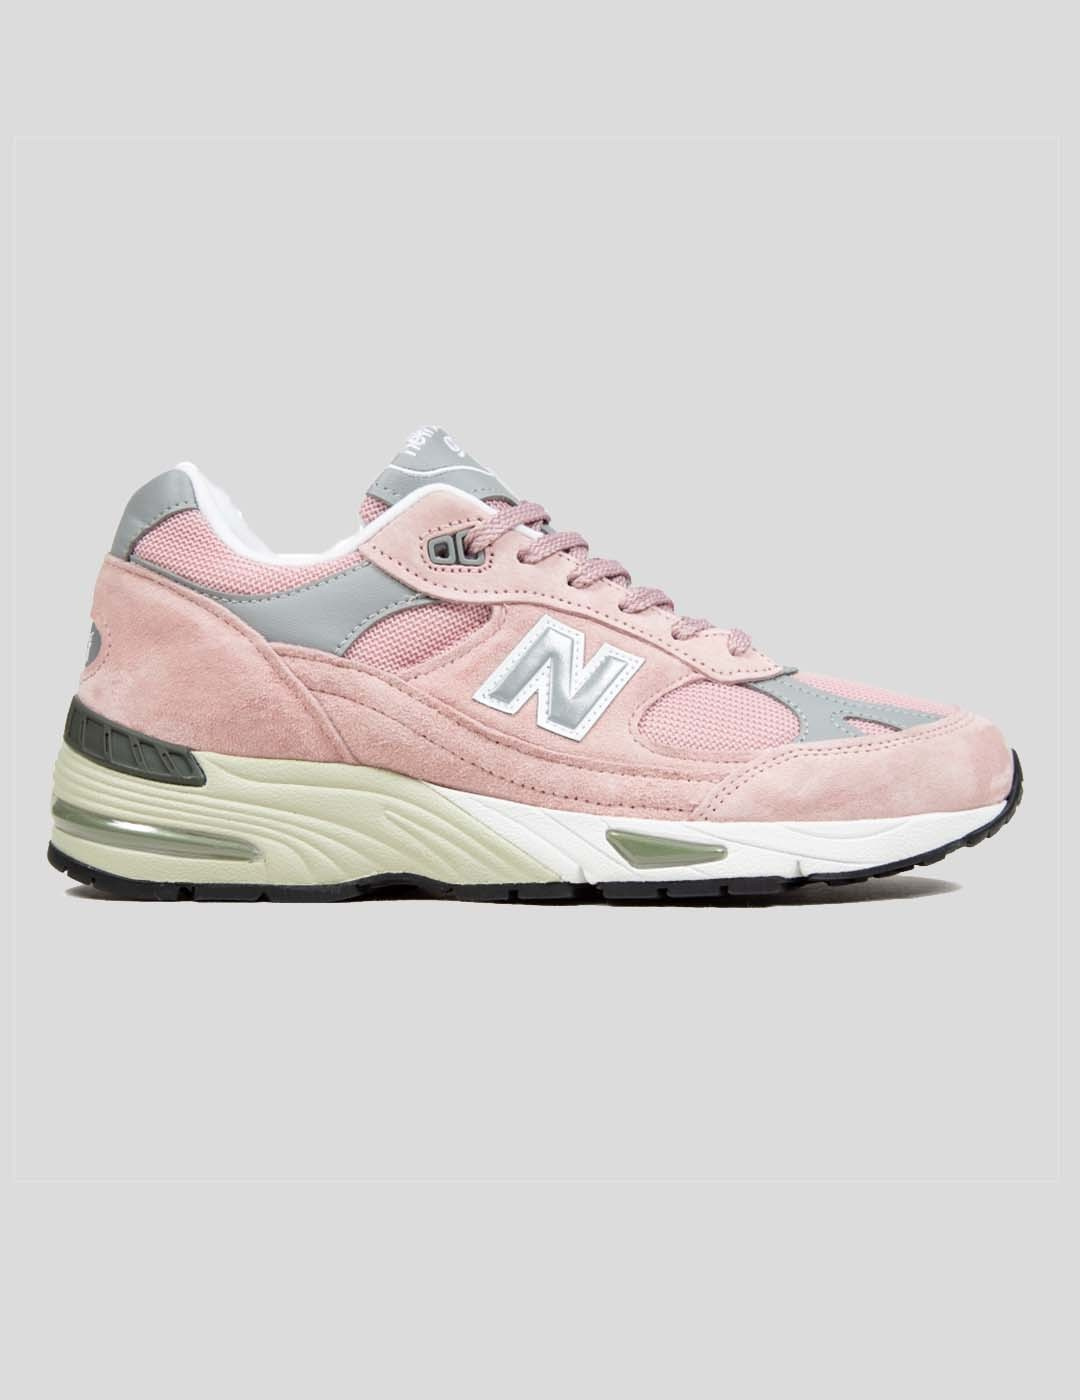 """ZAPATILLAS NEW BALANCE 991 """"MADE IN UK"""" SHY PINK SILVER"""